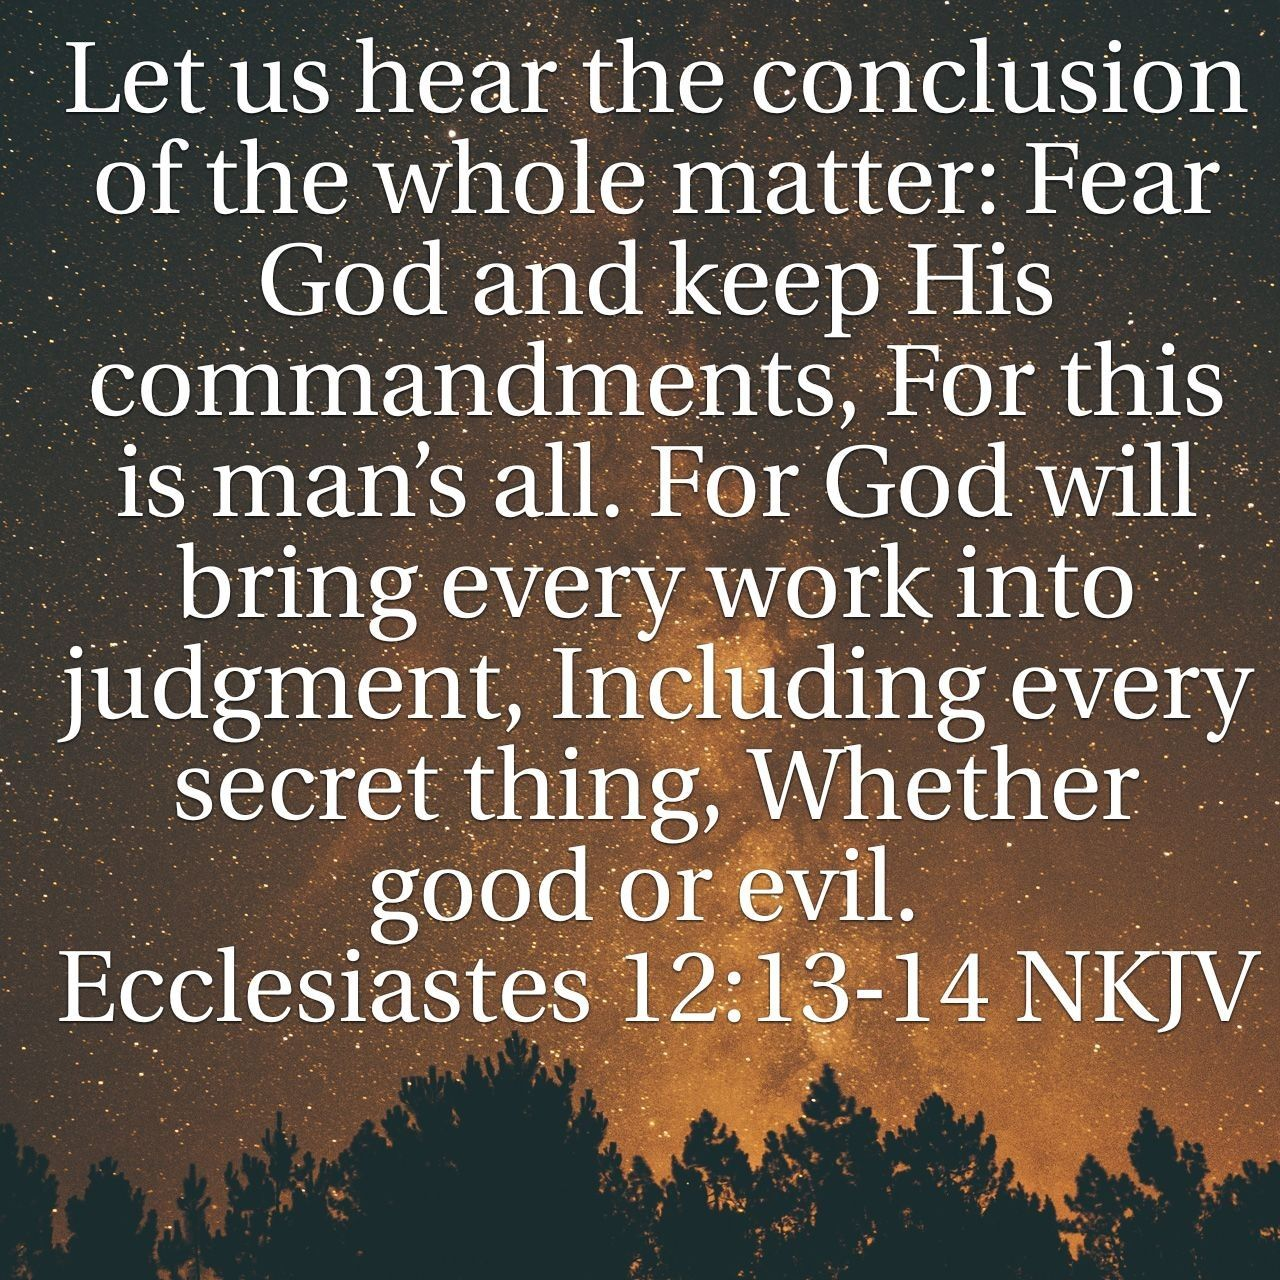 Image result for ecclesiastes 12:13-14